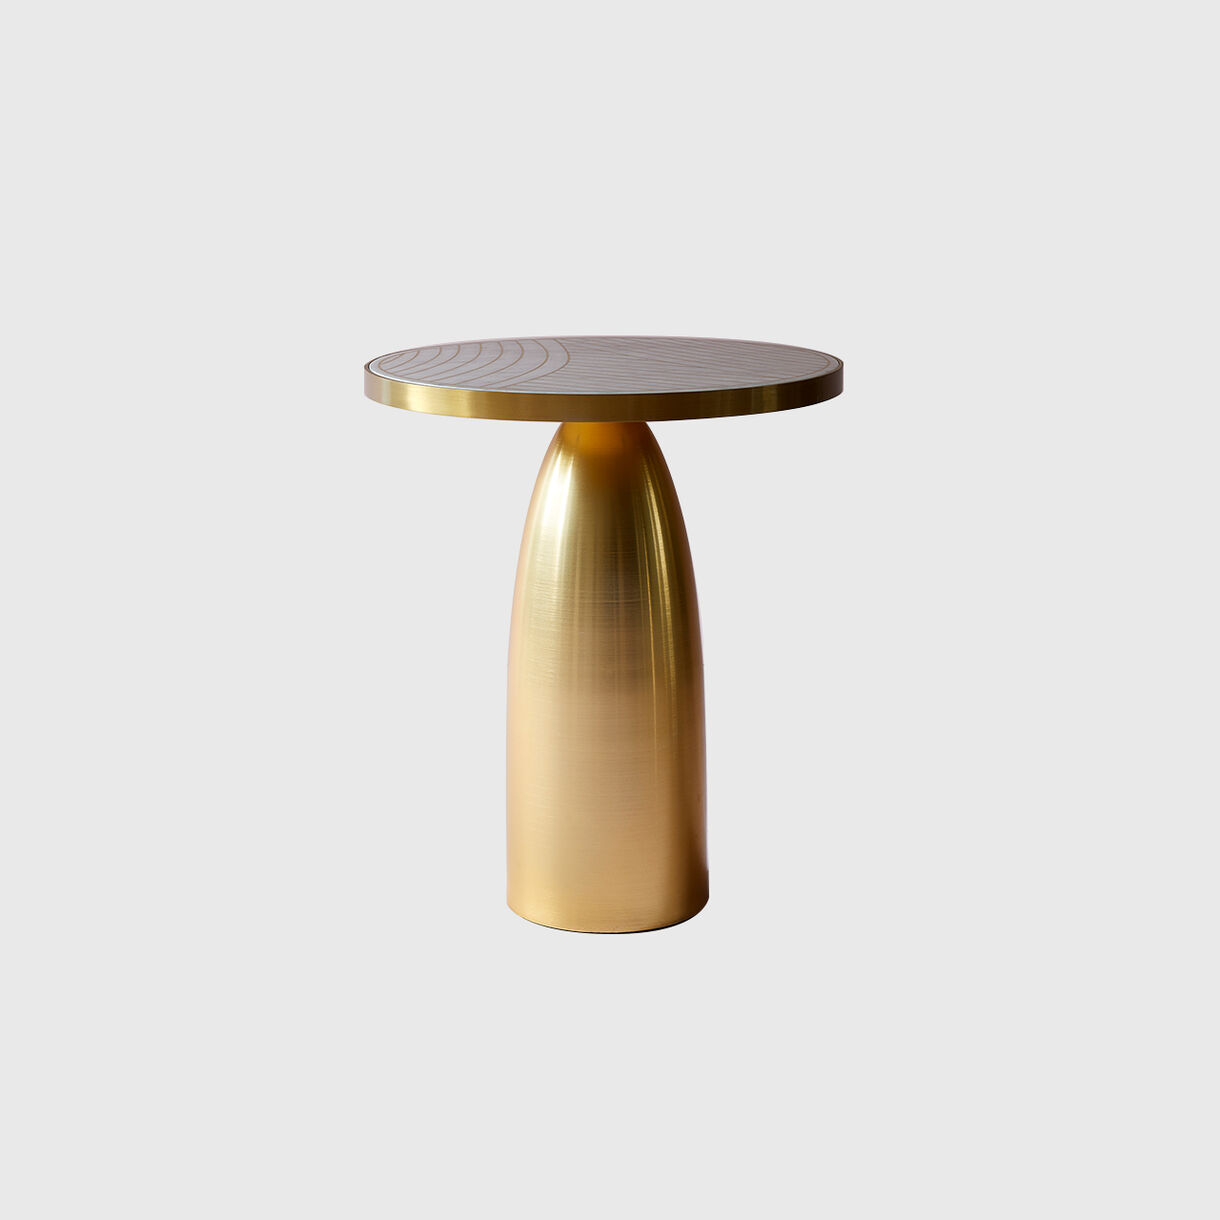 Lustre Side Table, Bianco Marble with Dhow Inlay